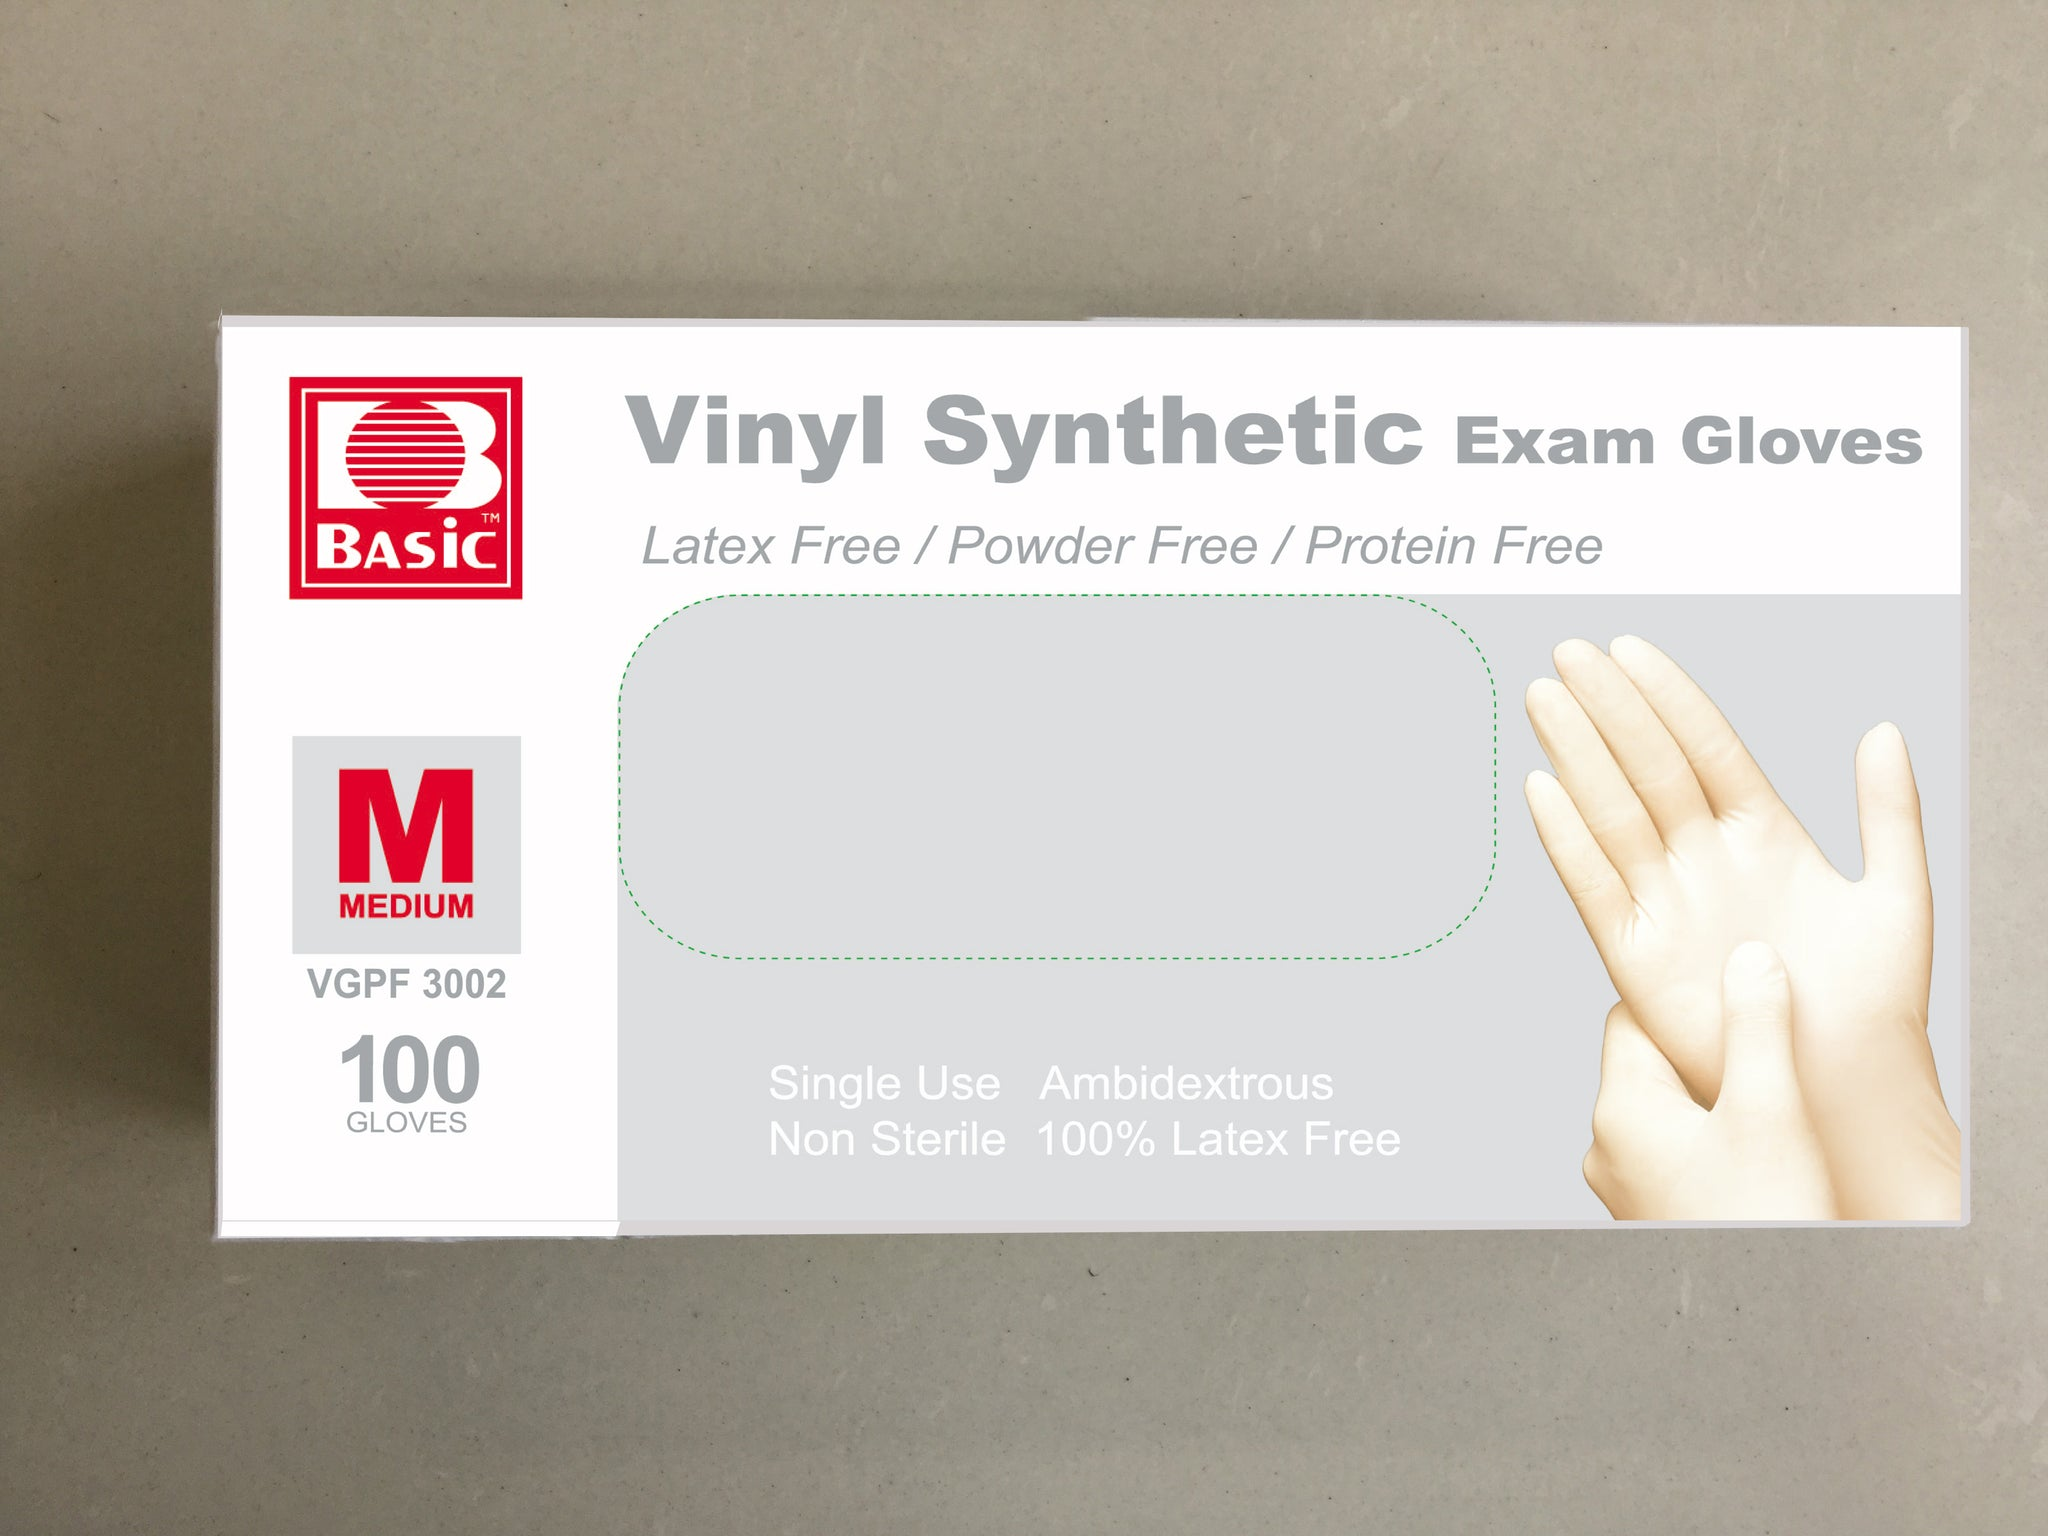 Box of Disposable Vinyl Gloves - 100 PCS